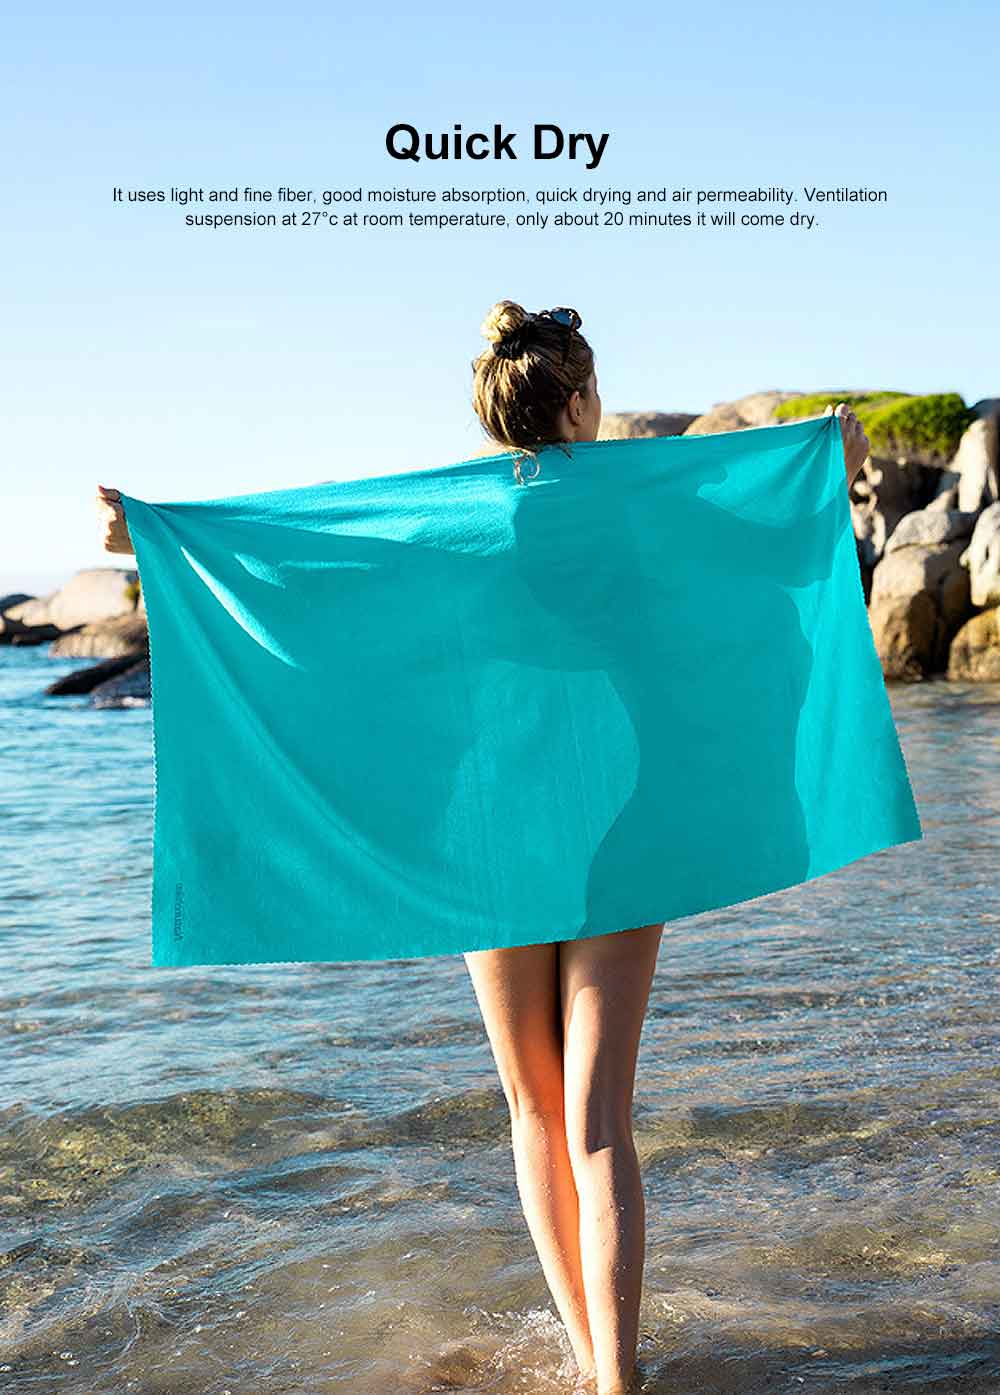 Breathable Quick Dry Soak-in Bath Towel, Towel for Swimming Travelling Beach or Gym, Hygroscopic Towel & Bathing Towel 1